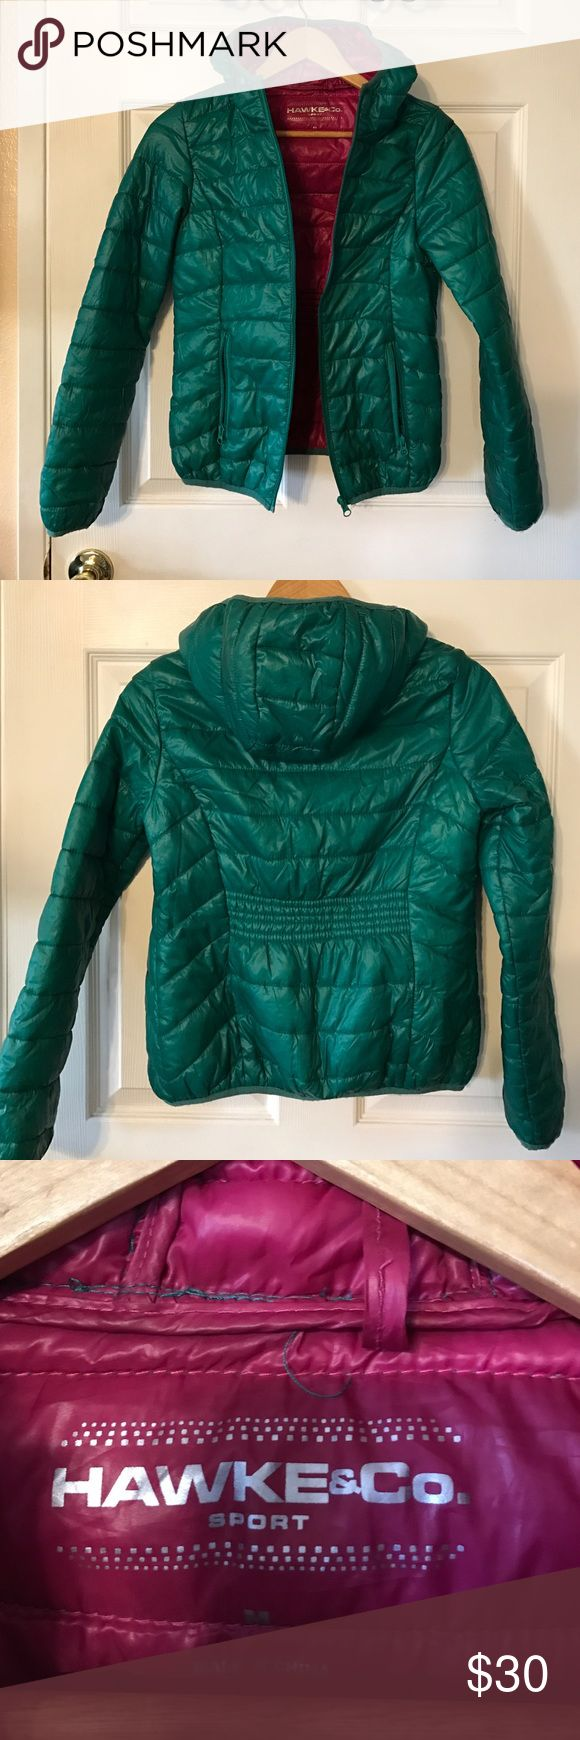 Women's green winter coat Beautiful lightweight puffy winter coat. Has two outer pockets and two inner ones as well. In excellent condition!! hawke&Co. Jackets & Coats Puffers